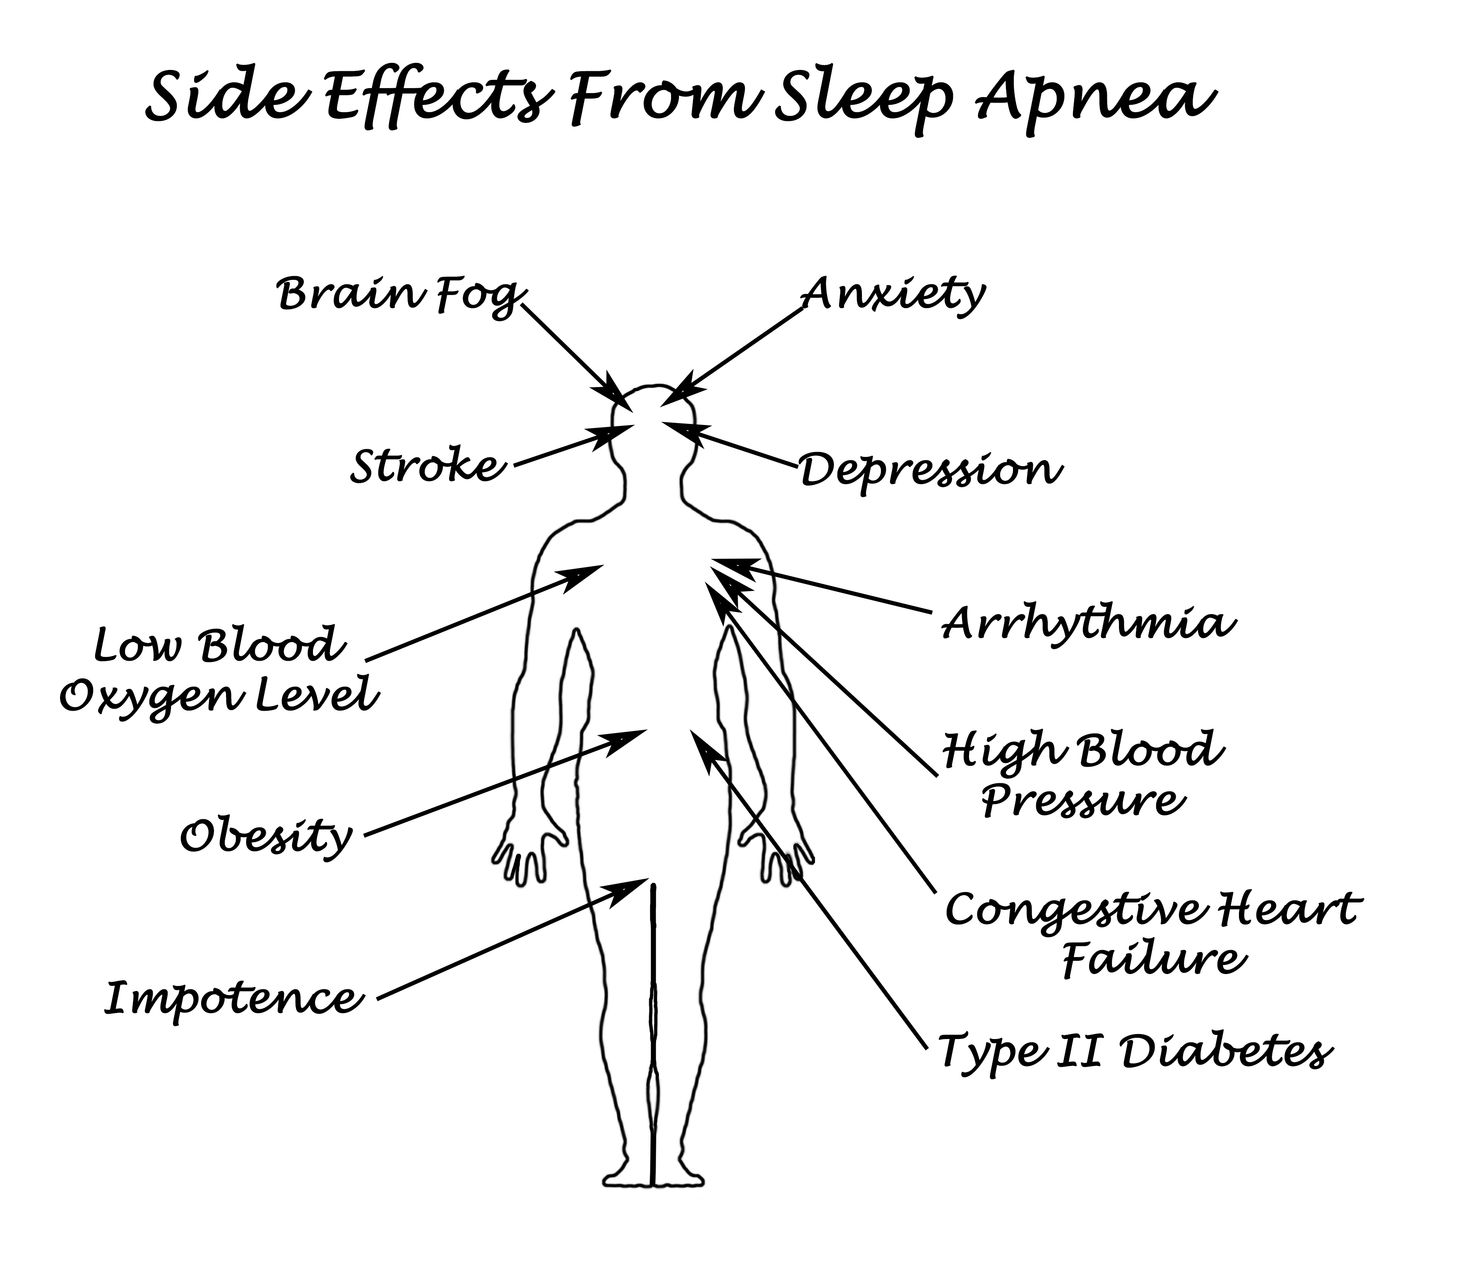 31164387 - sife effects from sleep apnea